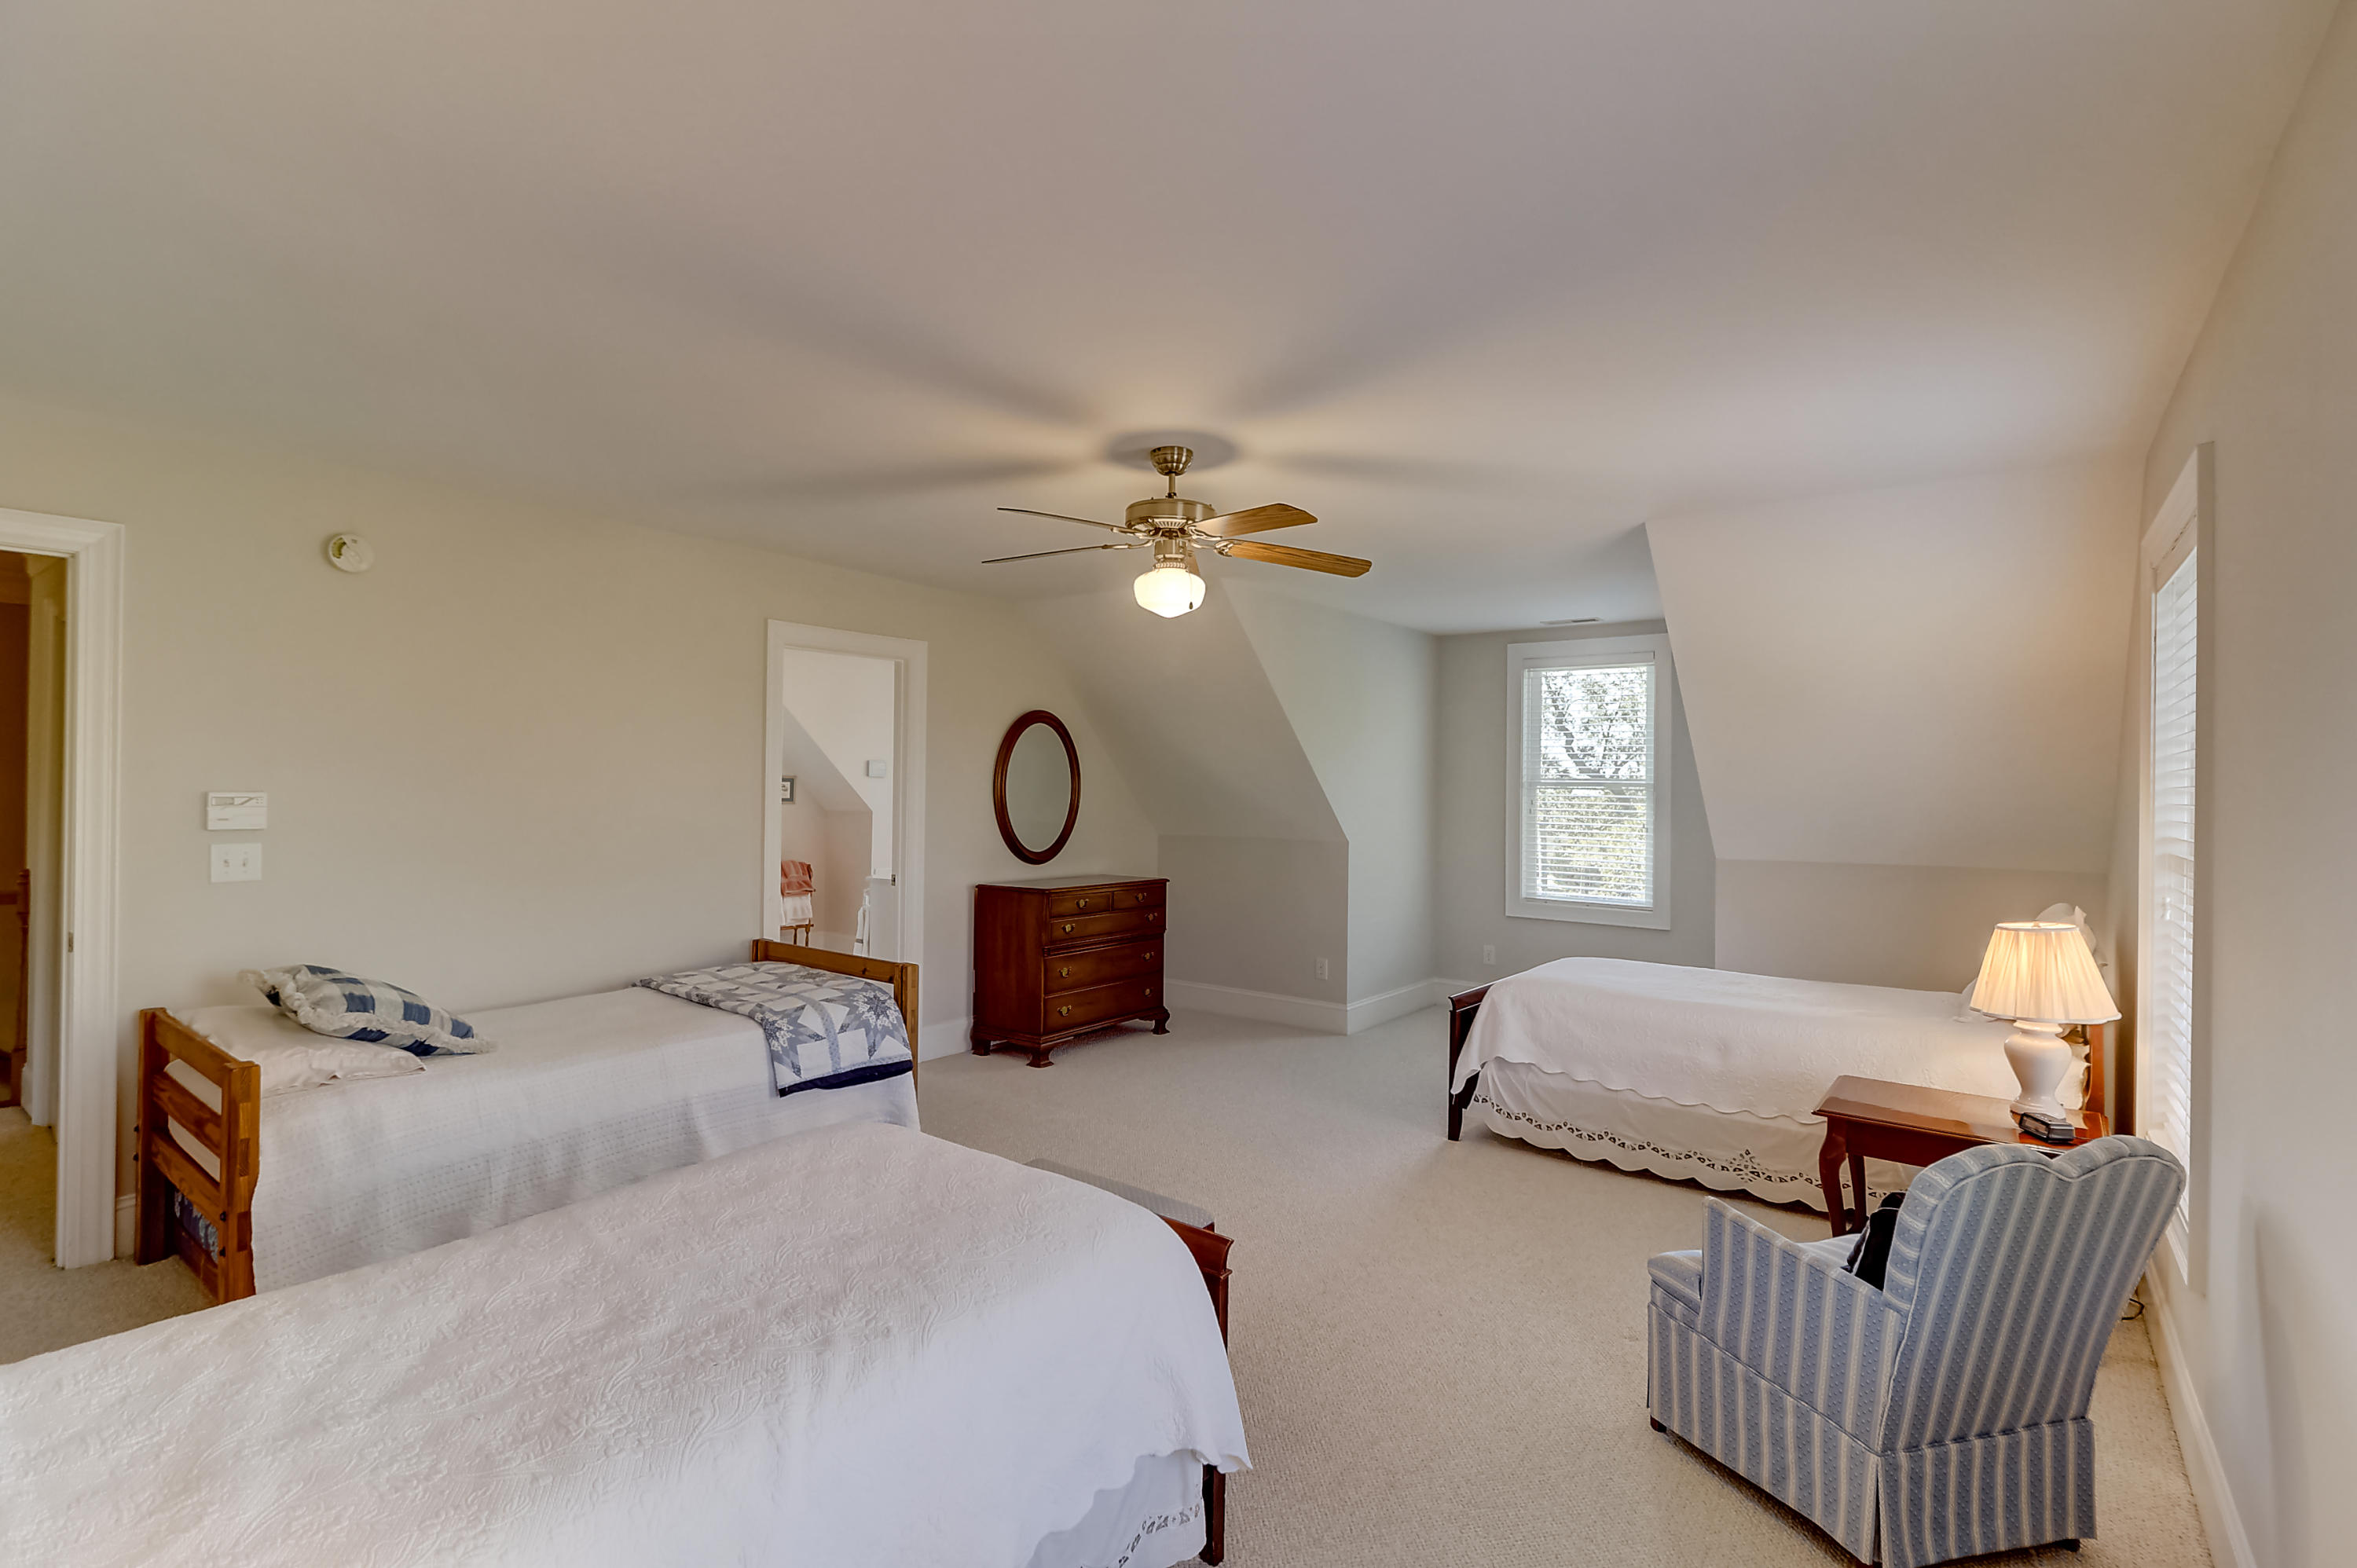 Stratton Place Homes For Sale - 1494 Stratton, Mount Pleasant, SC - 17